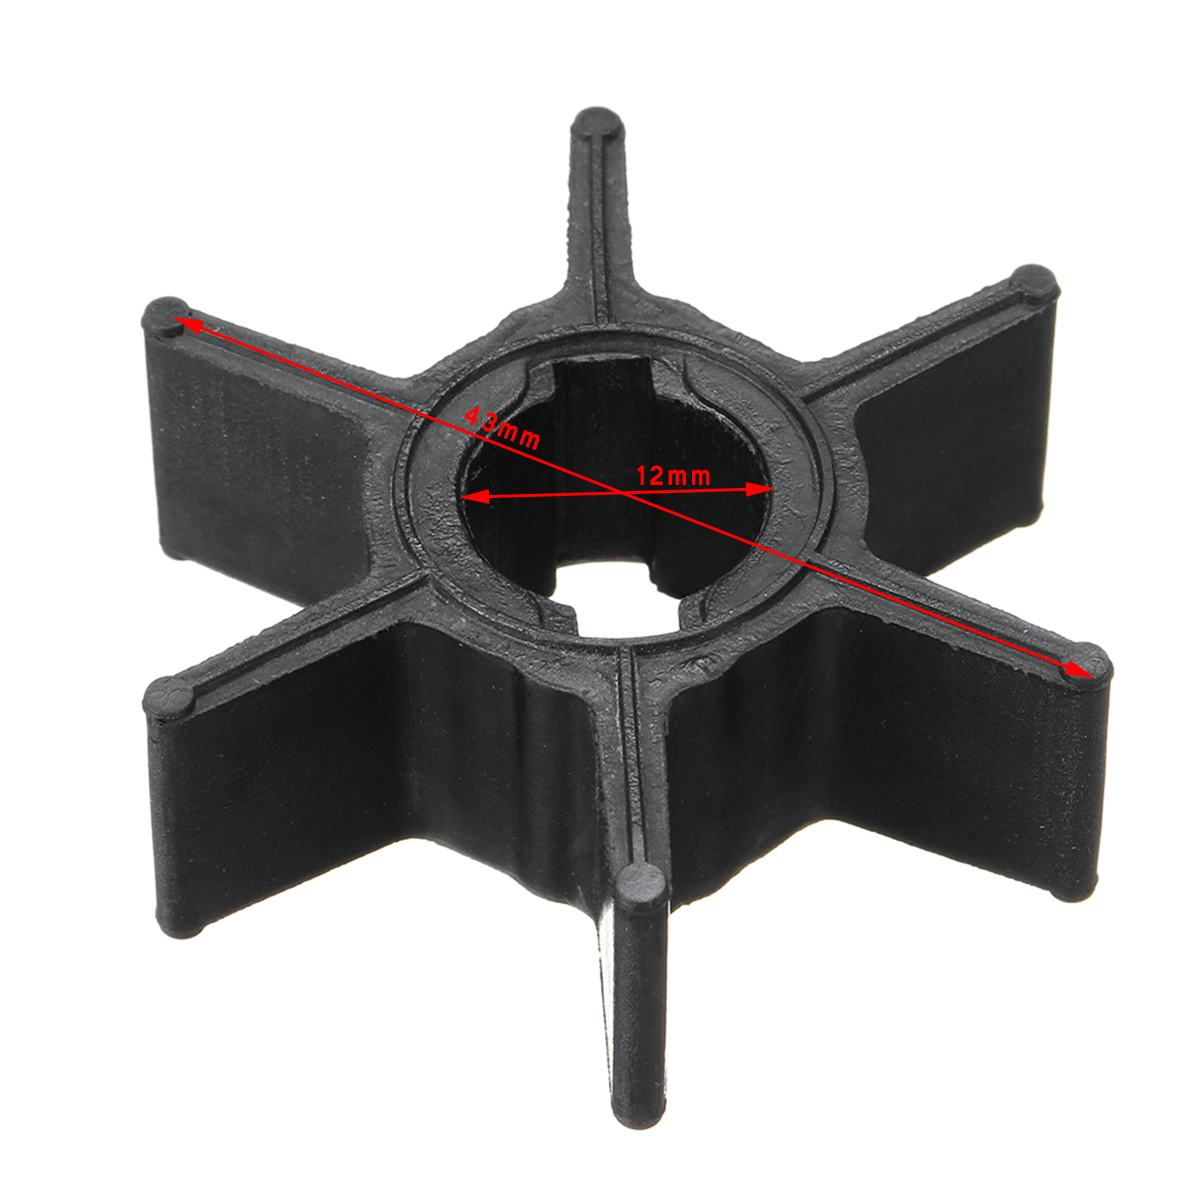 47-952892 Water Pump Impeller Replacement for Mercury 2.2-3.3HP Outboard Motor 6 Blades Black Rubber Boat Parts & Accessories